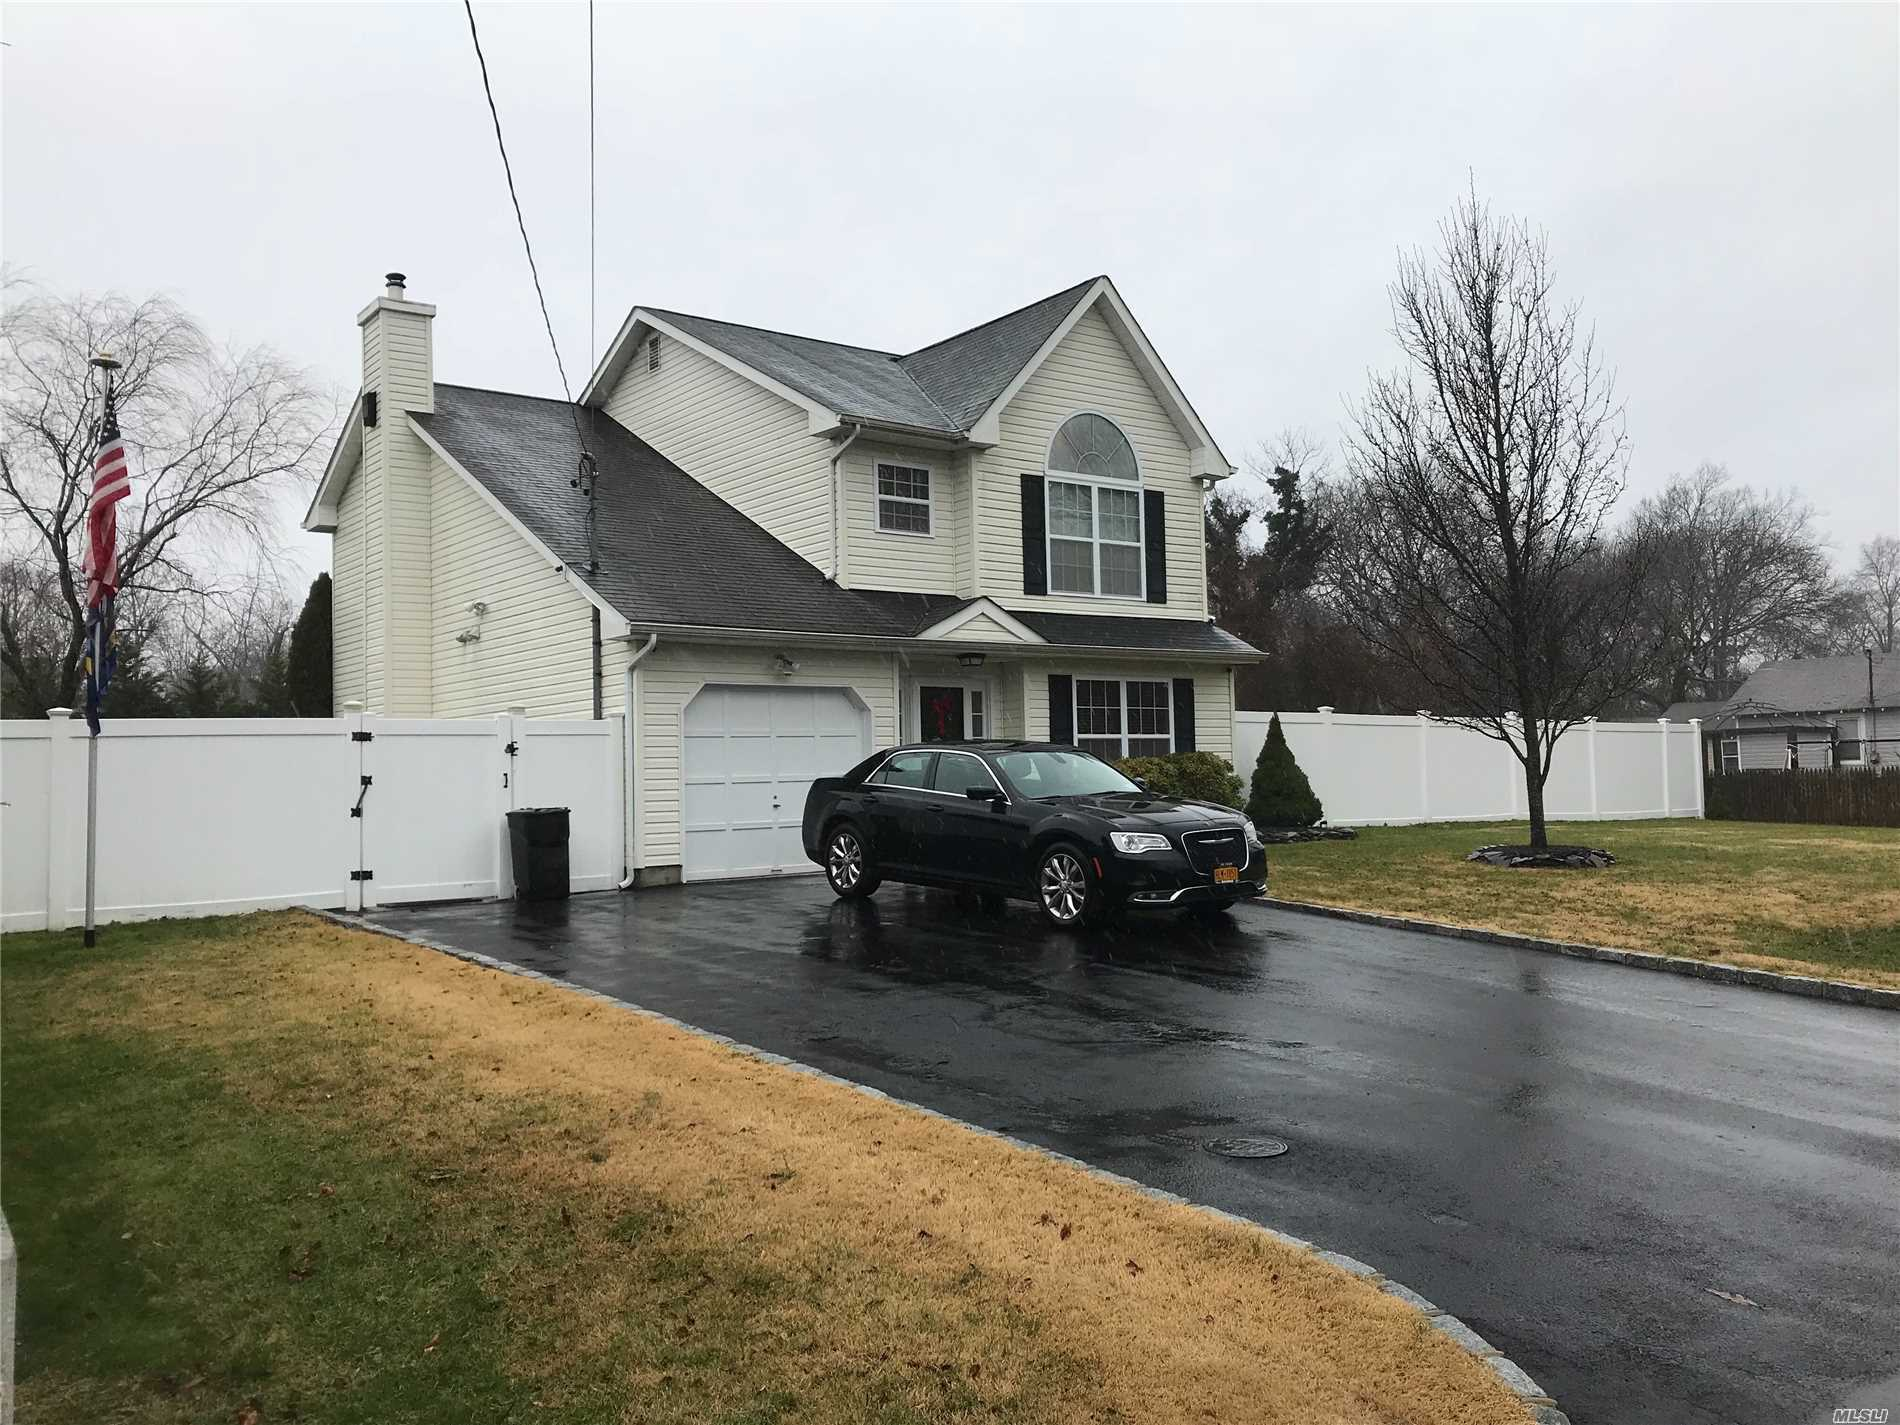 Welcome Home! New Year, New Home! Don't Be Left Out In The Cold. Well Maintained Victorian. Large Open Living Space. Lots Of Closet Space! Laundry On 2nd Floor. Master Bath Is Walk-In Shower.